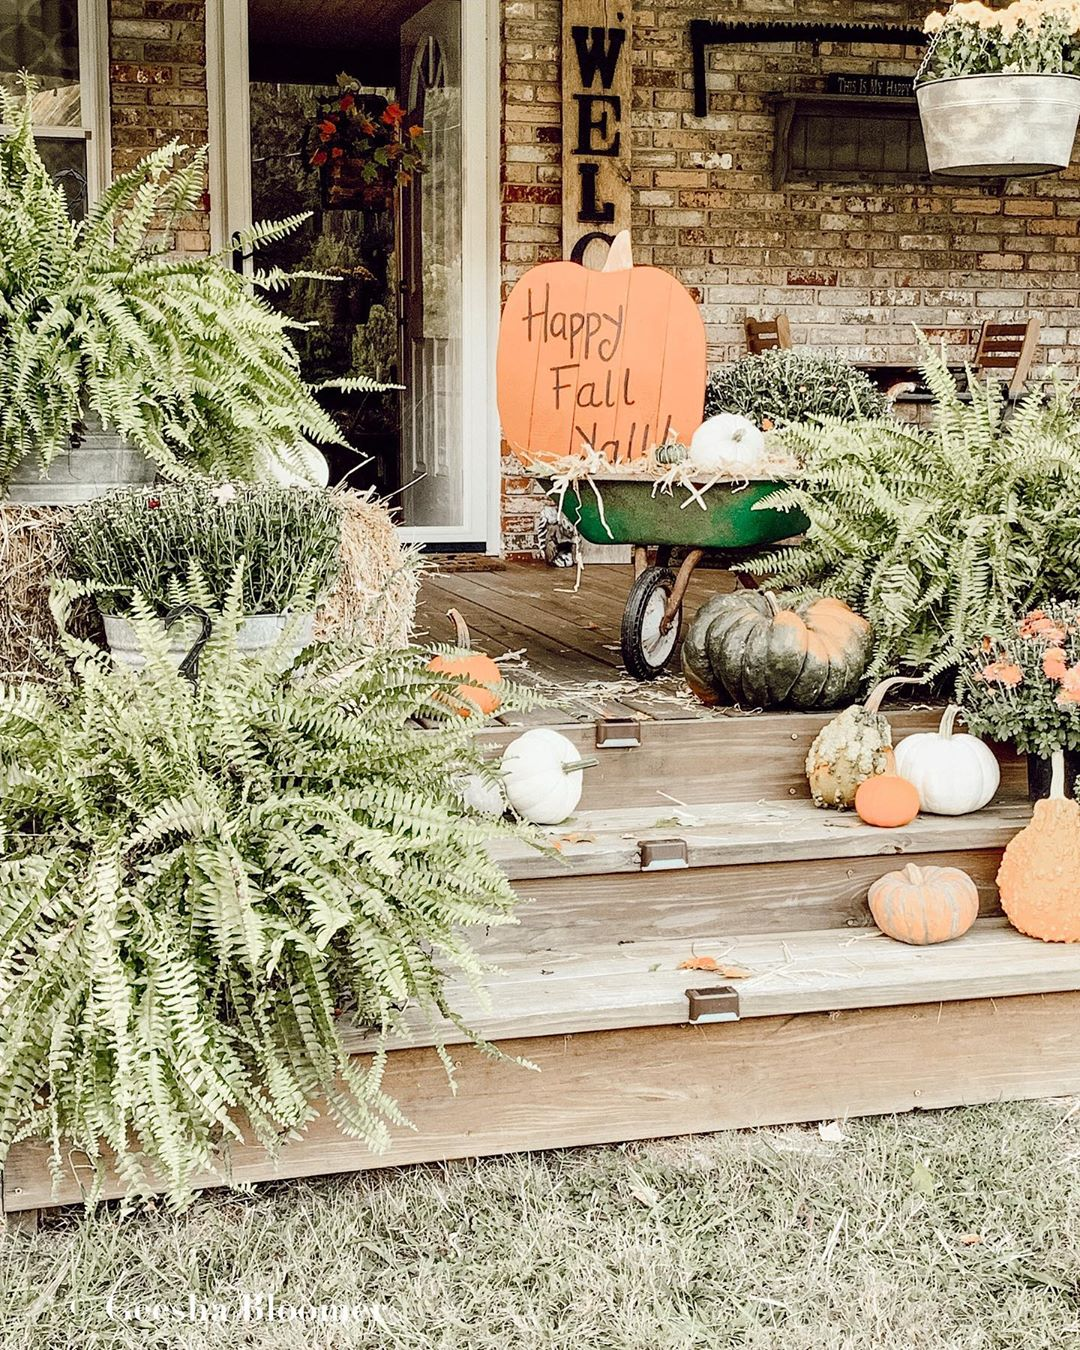 1569404385 238 front porch decor ideas to welcome fall with - Front Porch Decor Ideas To Welcome Fall With